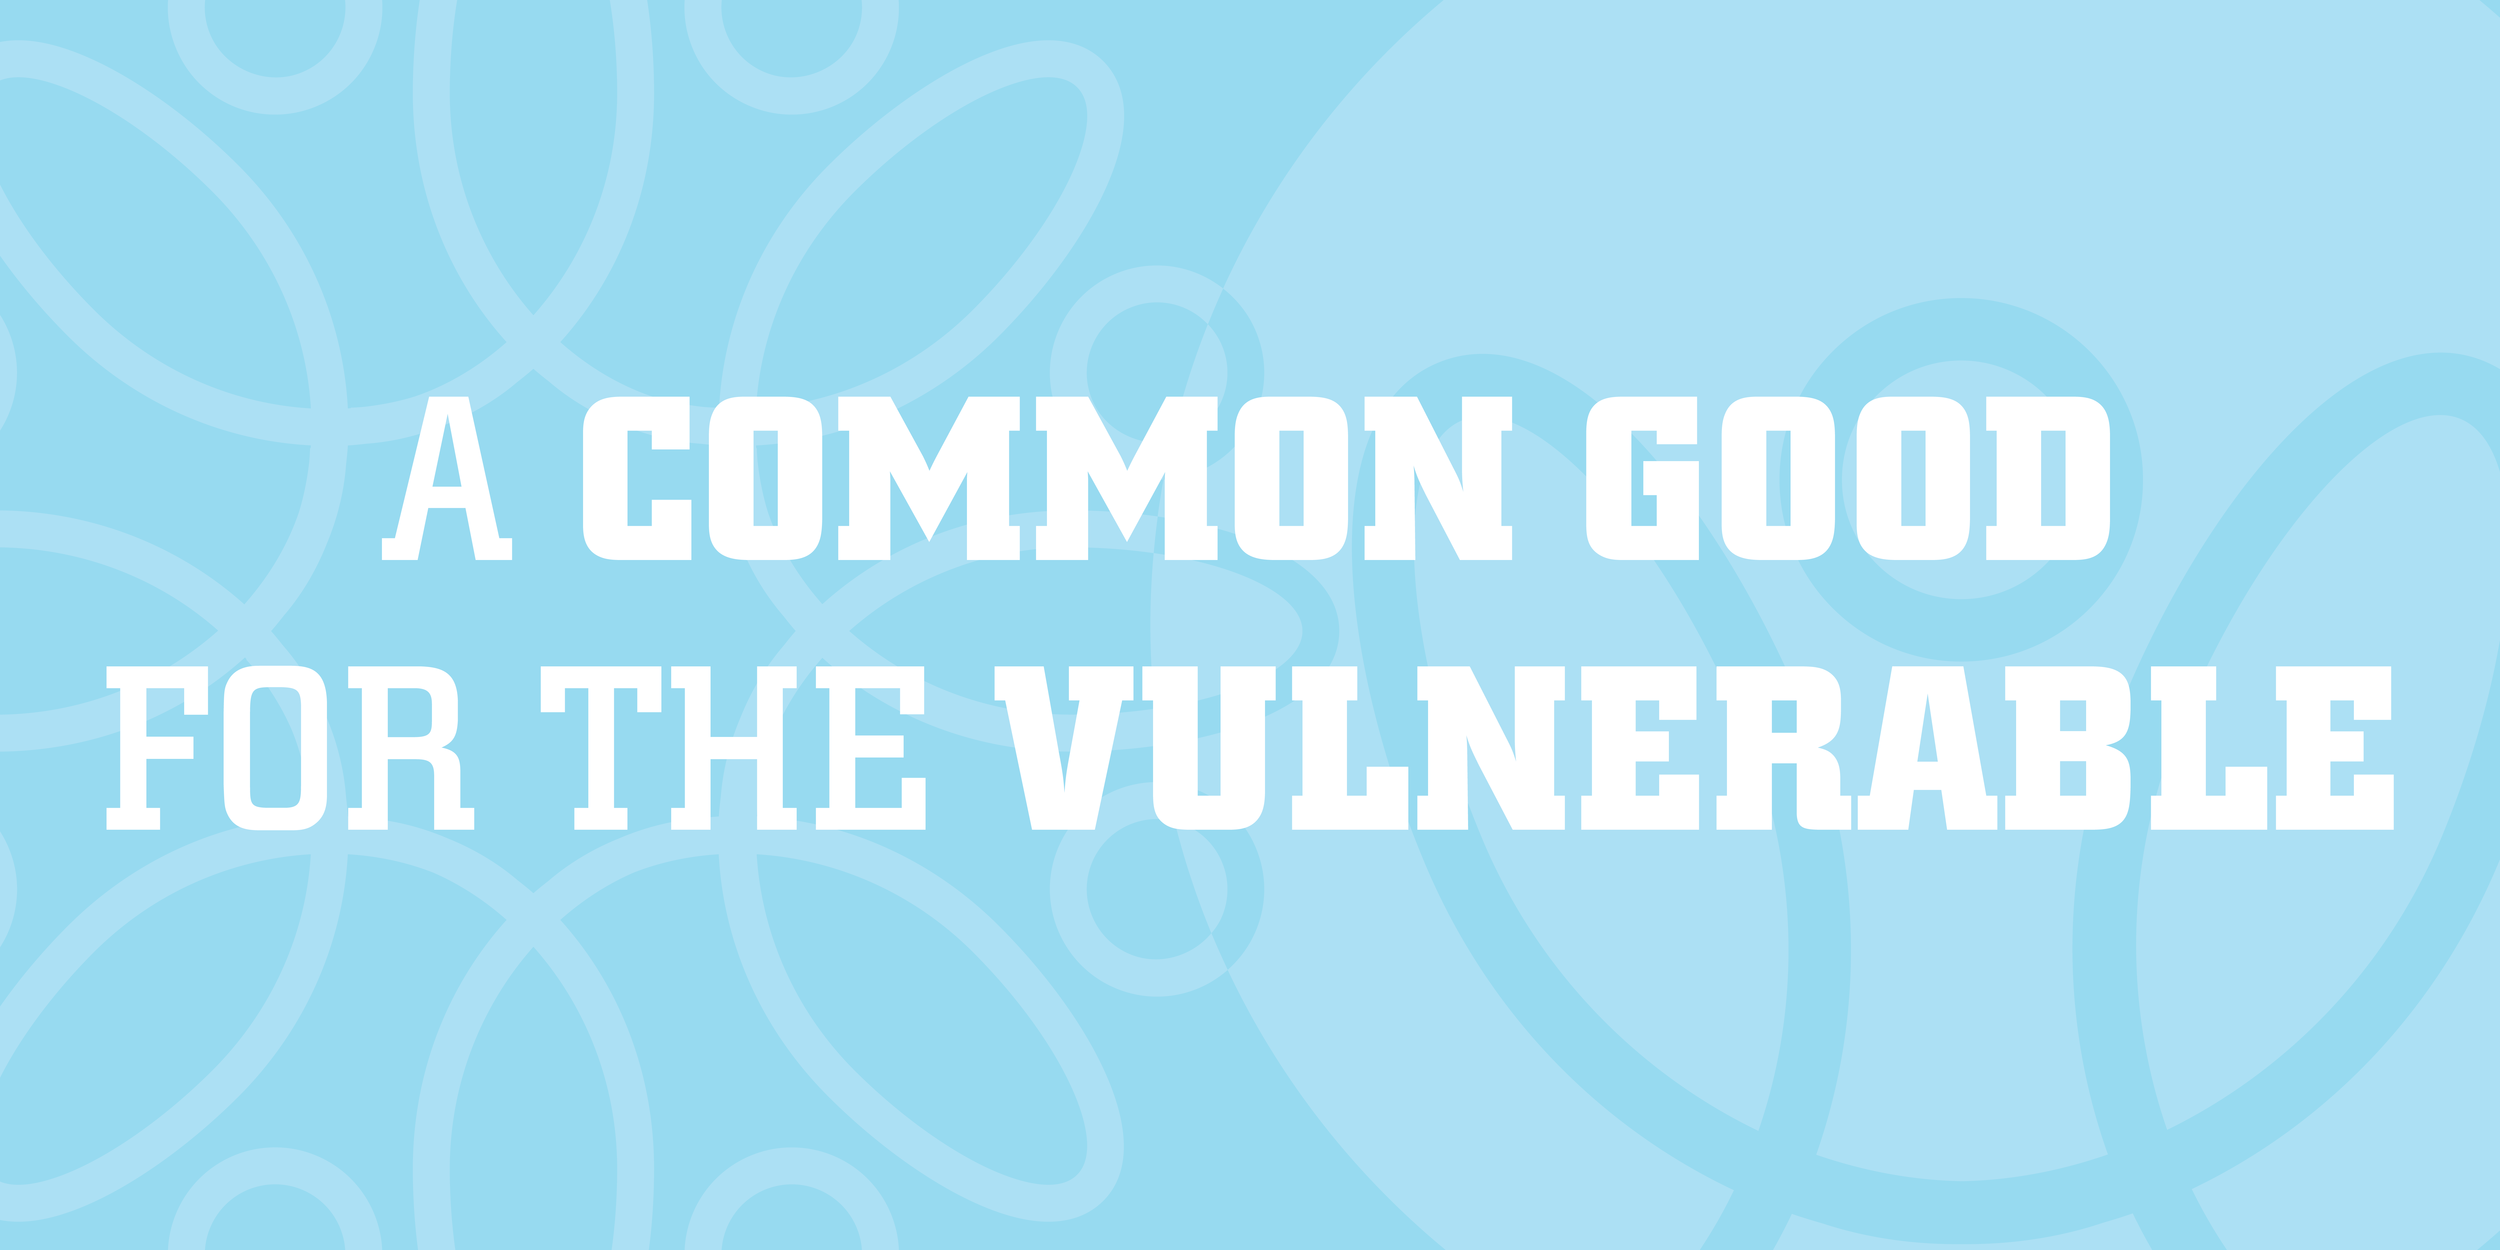 COMMON GOOD EVENT LOGO-03.png